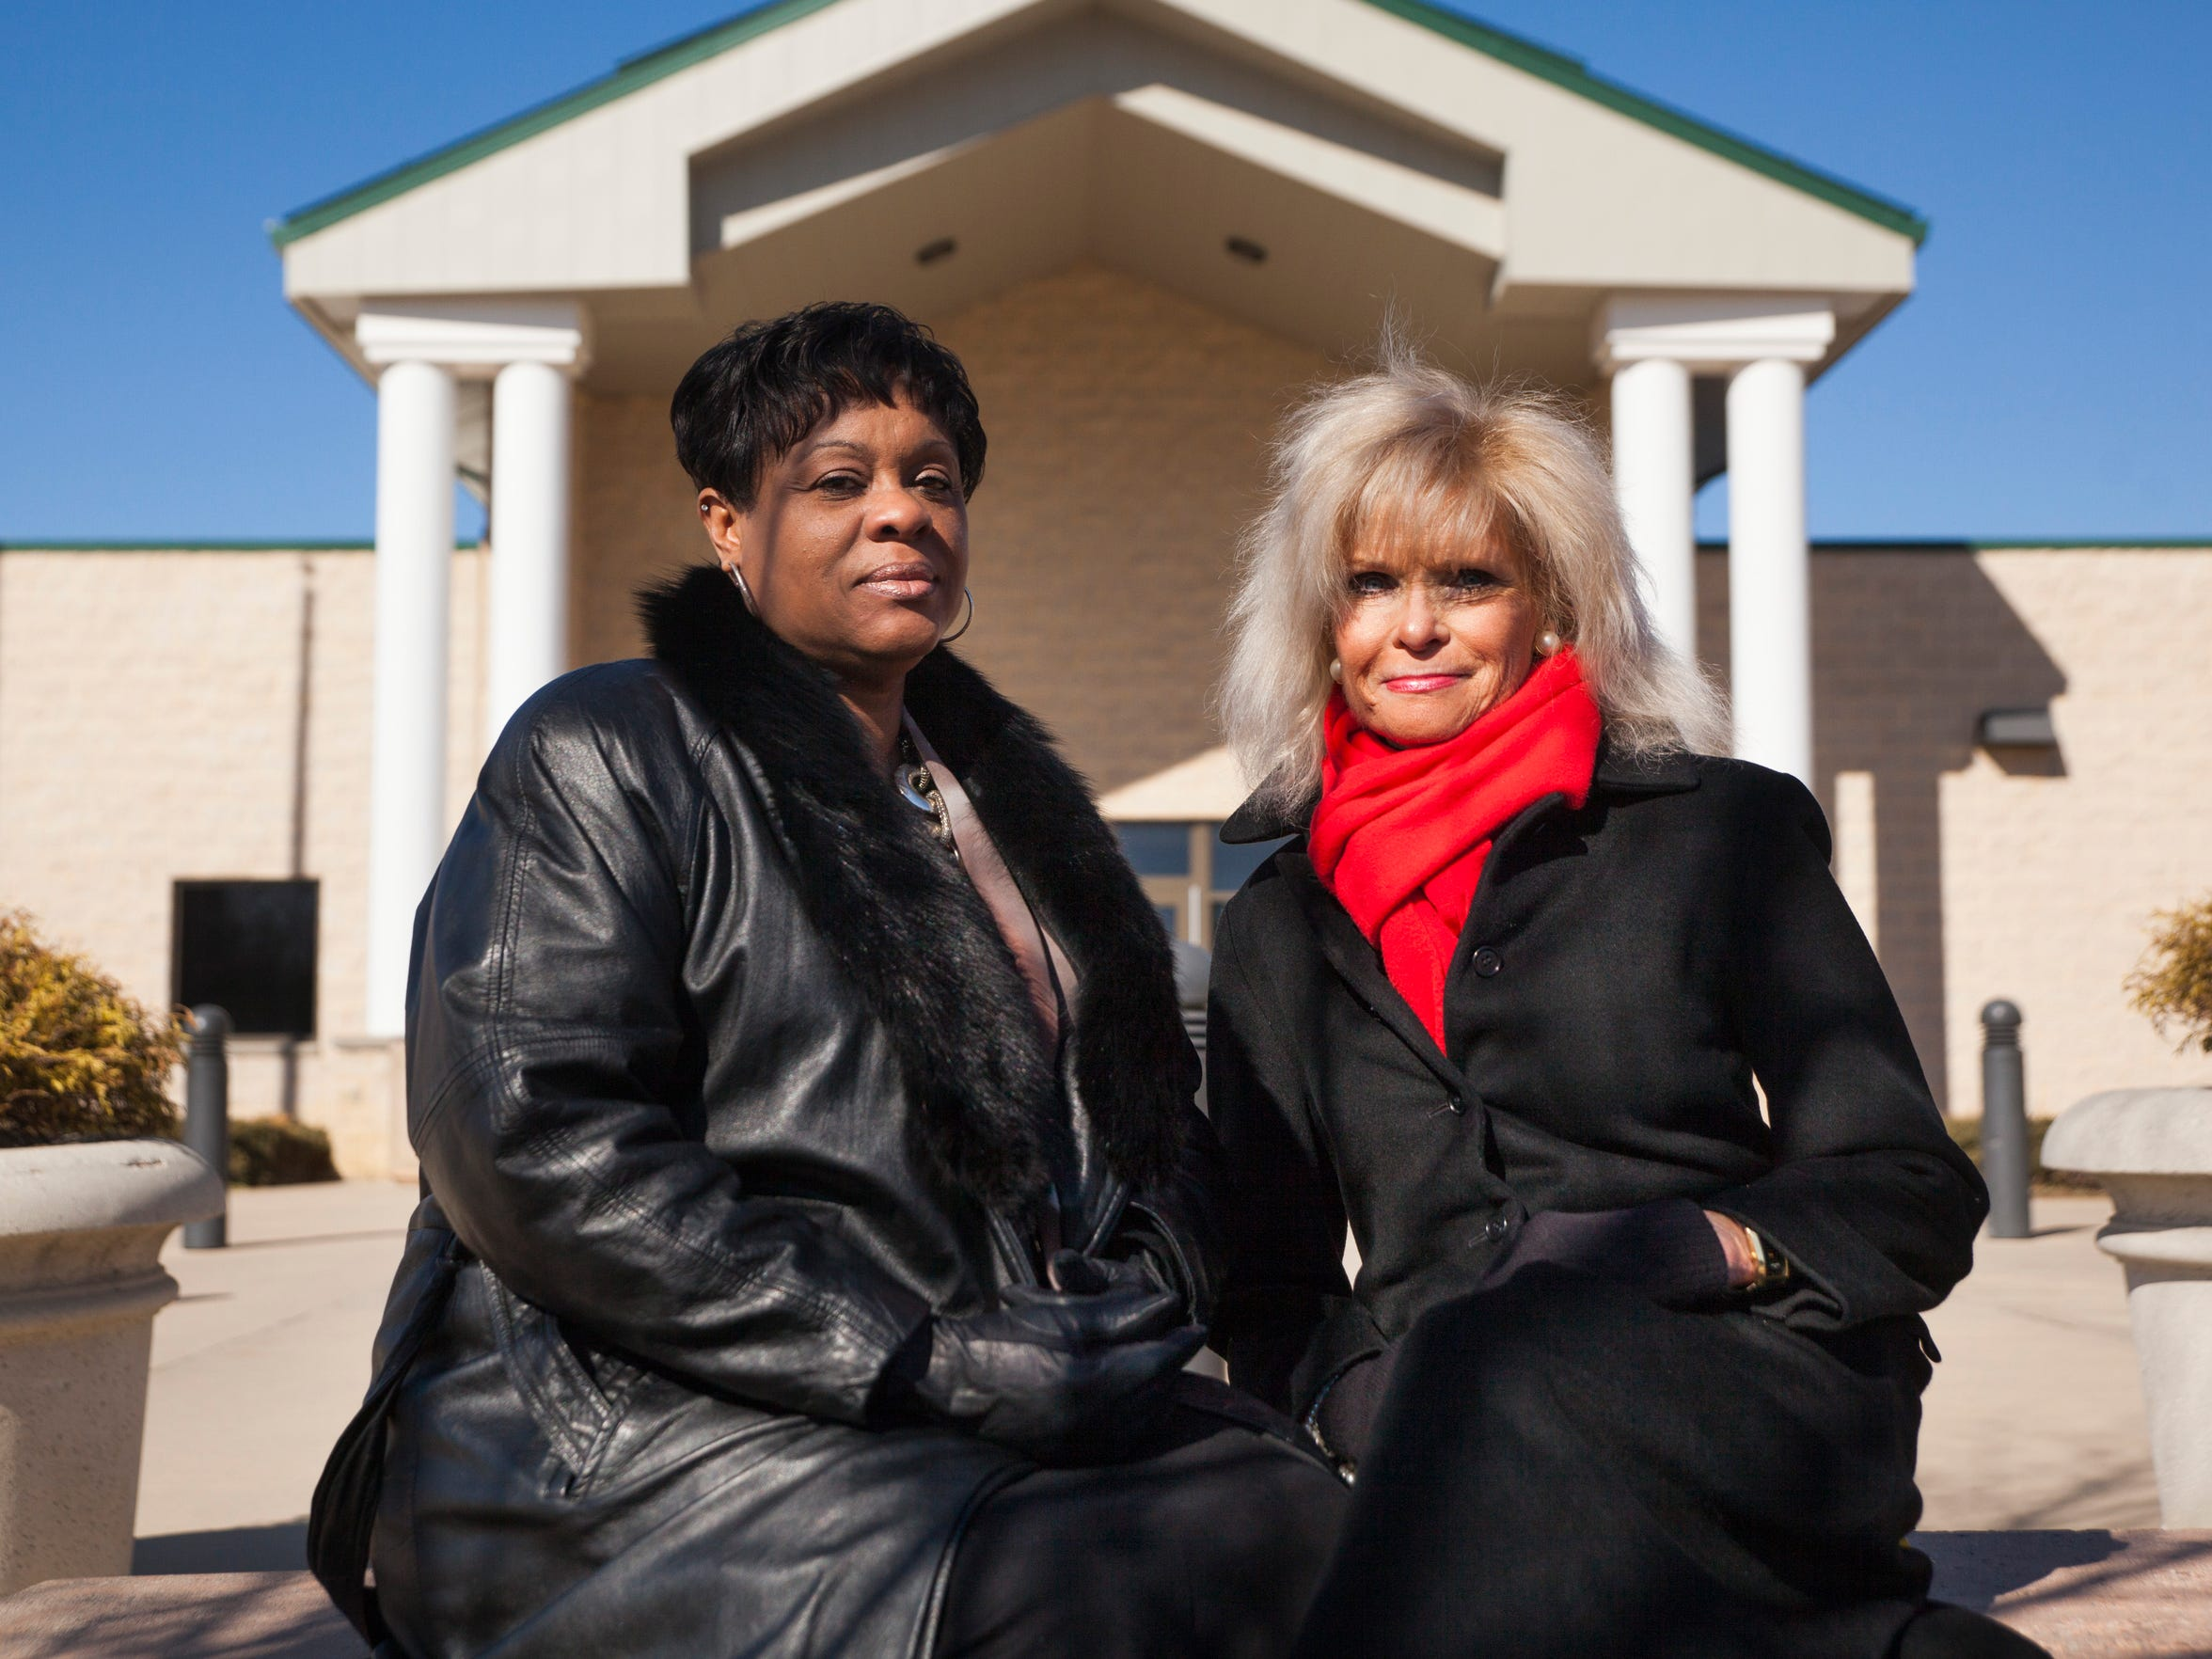 T-Ann Johnson, left, and Nancy Insco, who helped developed a pre-release re-entry program for women inmates at Middle River Regional Jail, sit outside the adult detention center in Verona on Feb. 15.